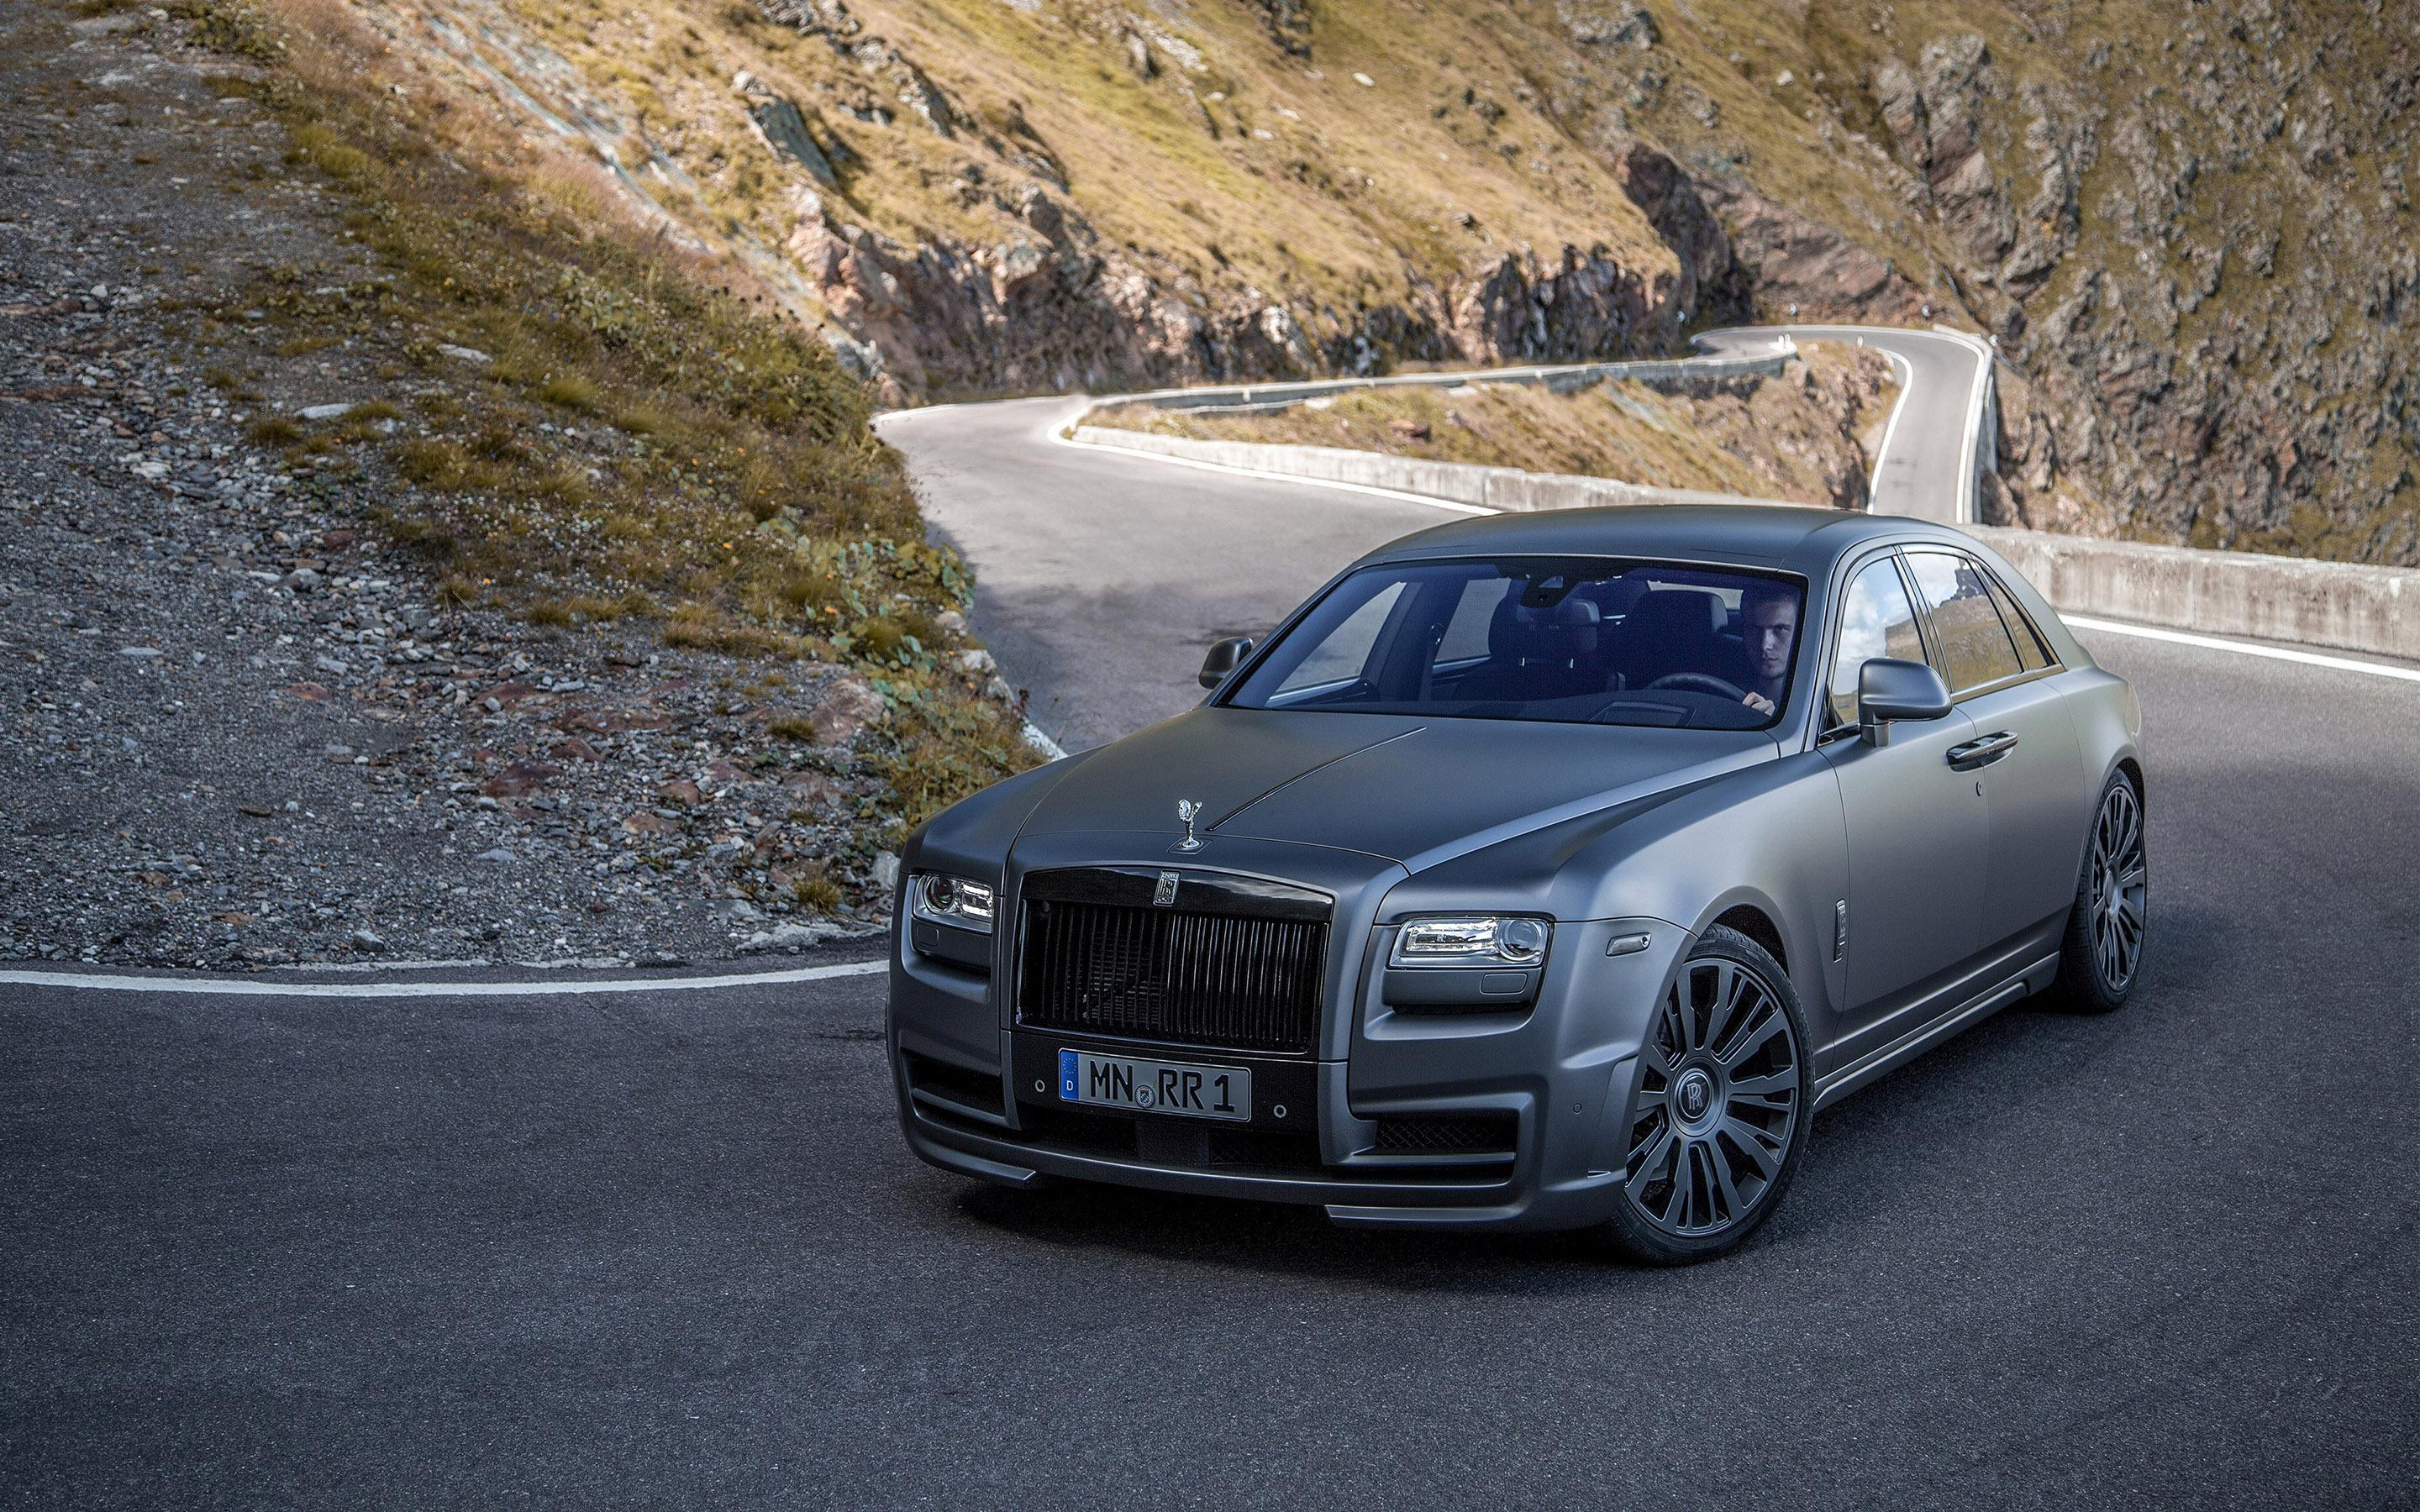 HD Matte gray Rolls Royce Ghost Wallpaper | Download Free - 149145